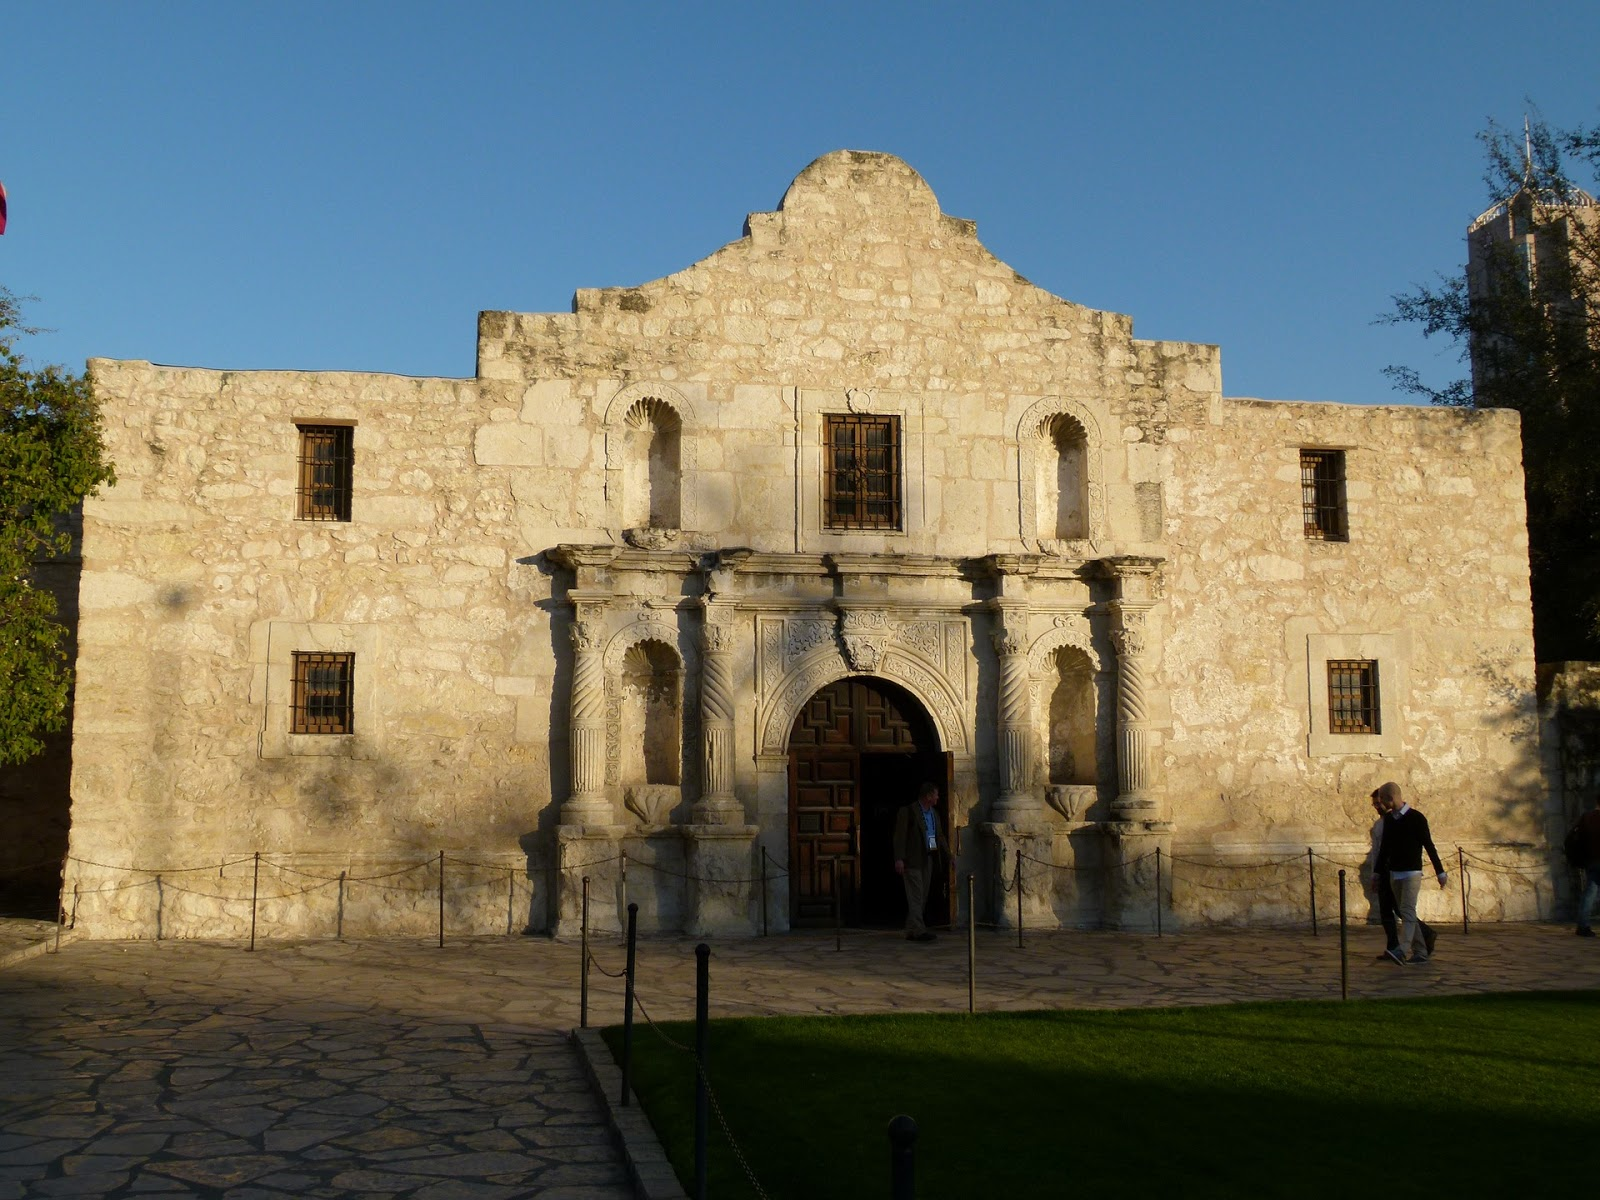 photo of the alamo in texas to illustrate a blog post about last stands in war movies